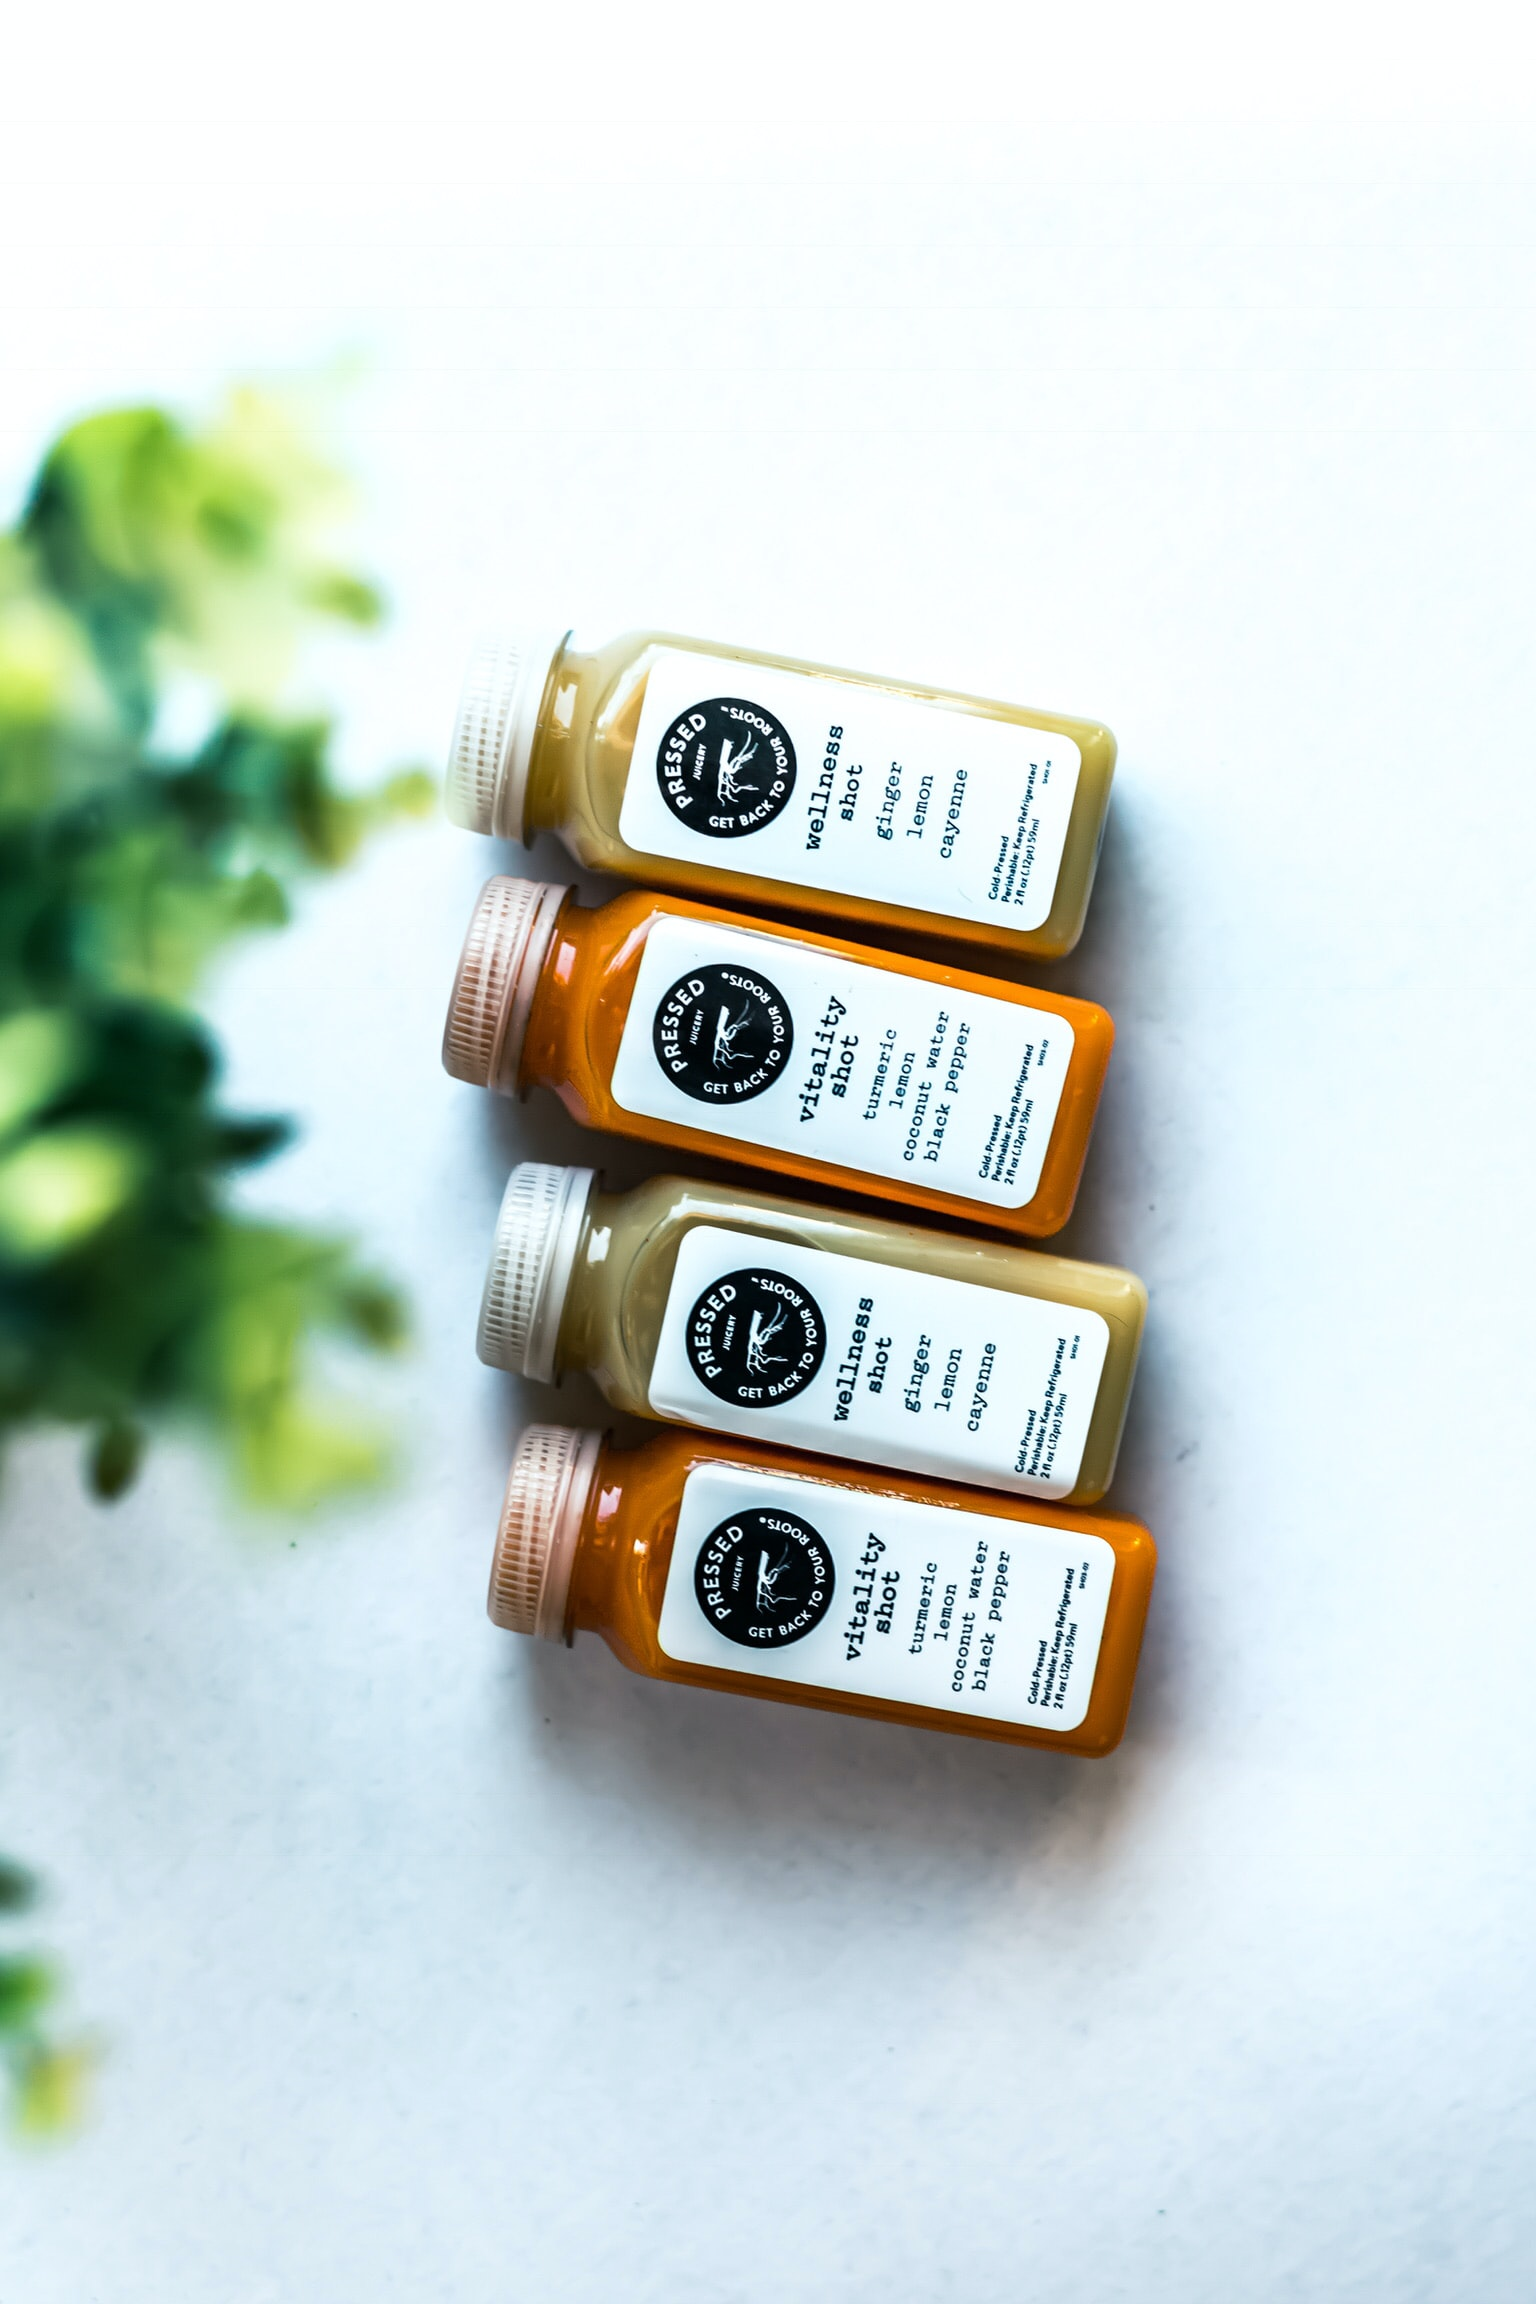 wellness shot and vitality shot glass bottles